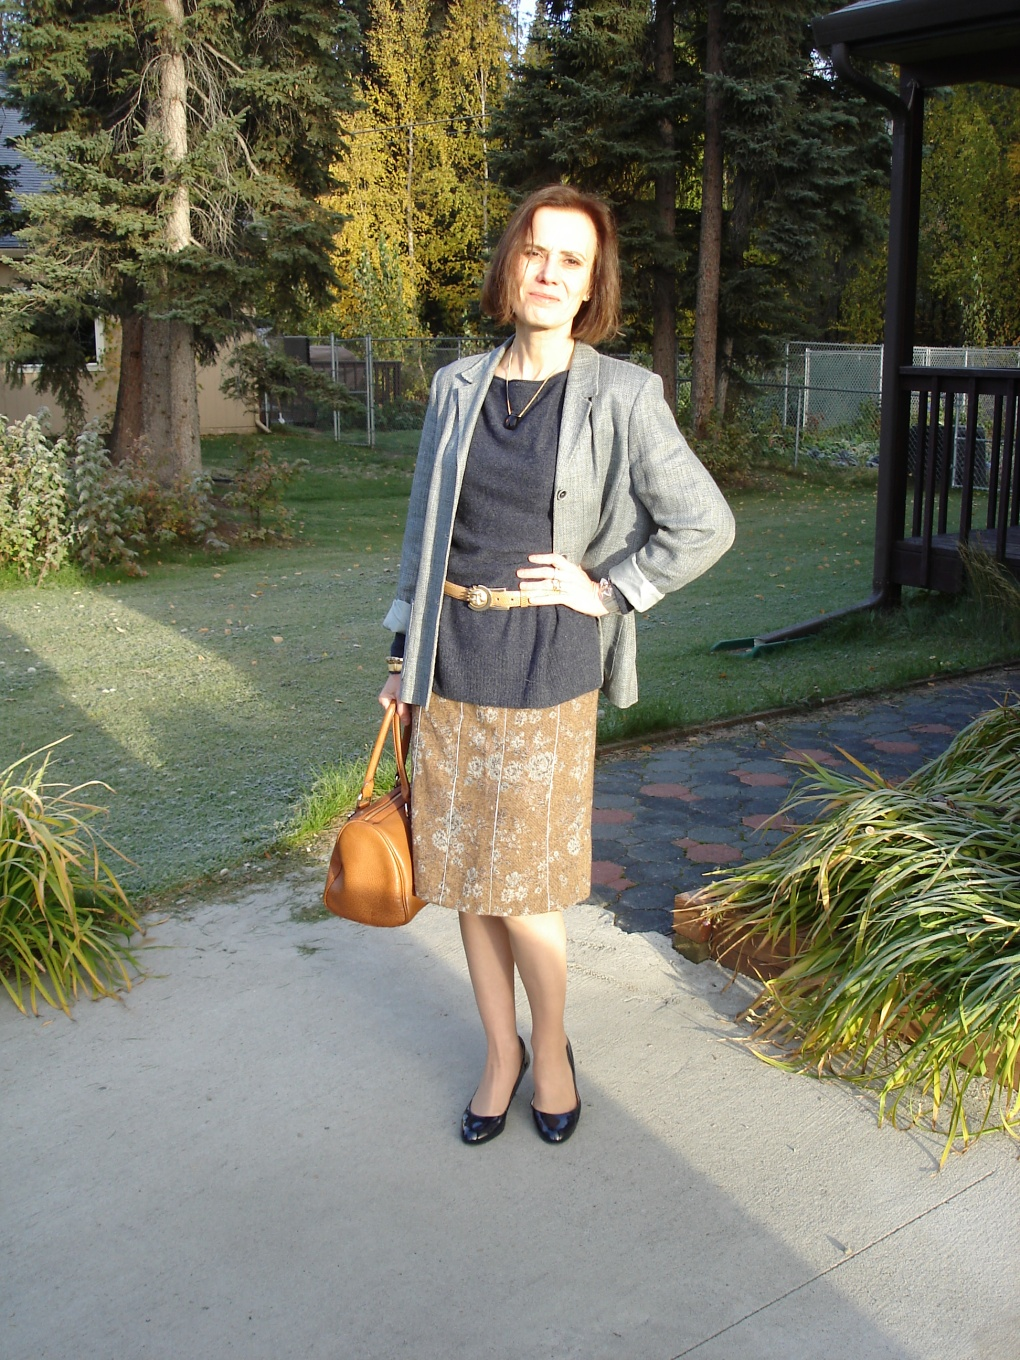 midlife fashion mature woman in tweed skirt with blazer as unmatched suit for work